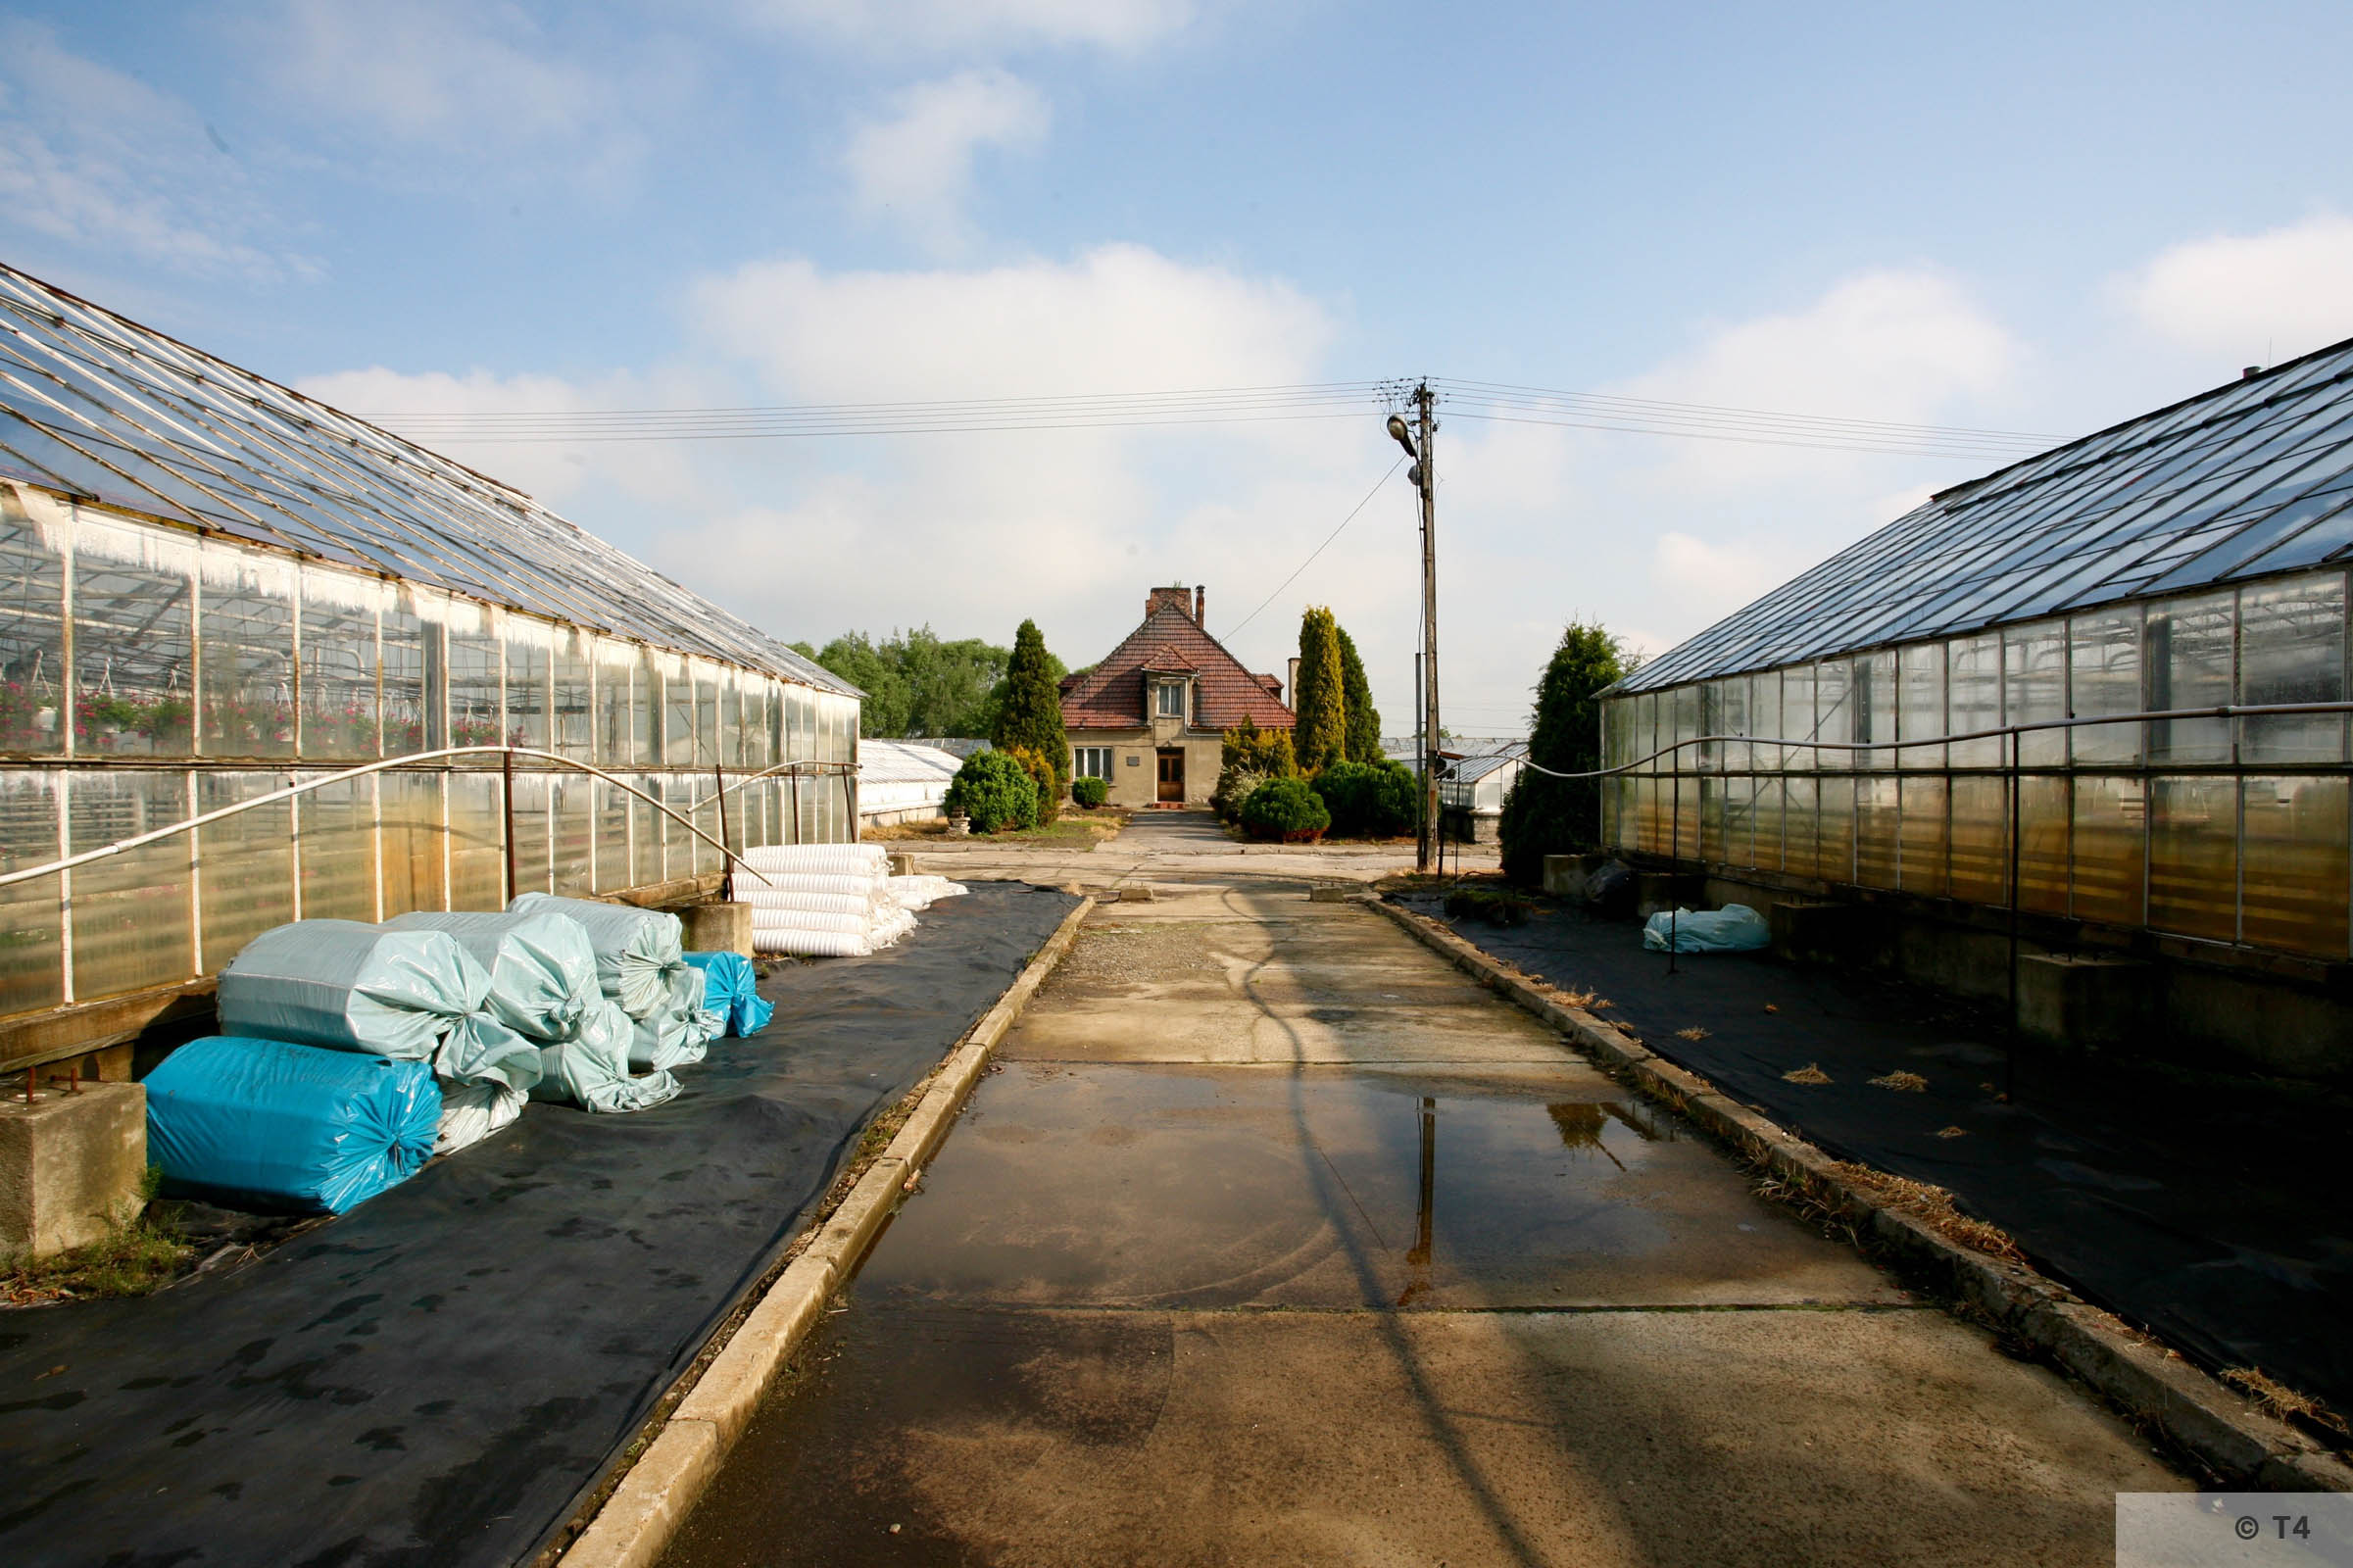 New greenhouses. Horticultural laboratory in the background. 2006 T4 5104